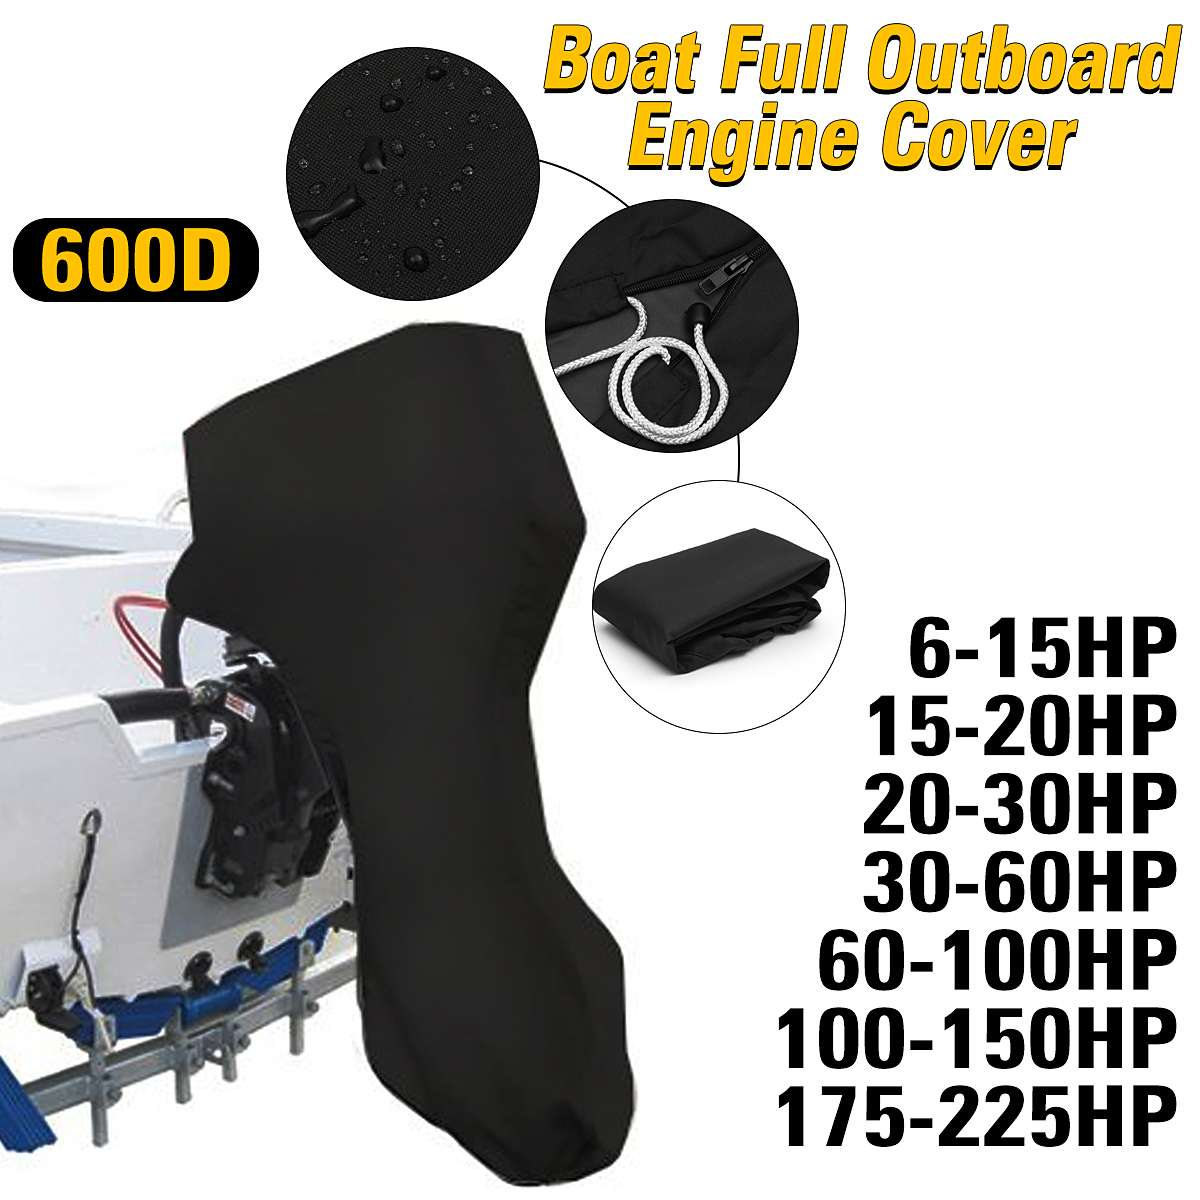 600D 6-225HP Boat Full Motor Cover Outboard Engine Protector for 6-225HP Boat Motors Black Waterproof image